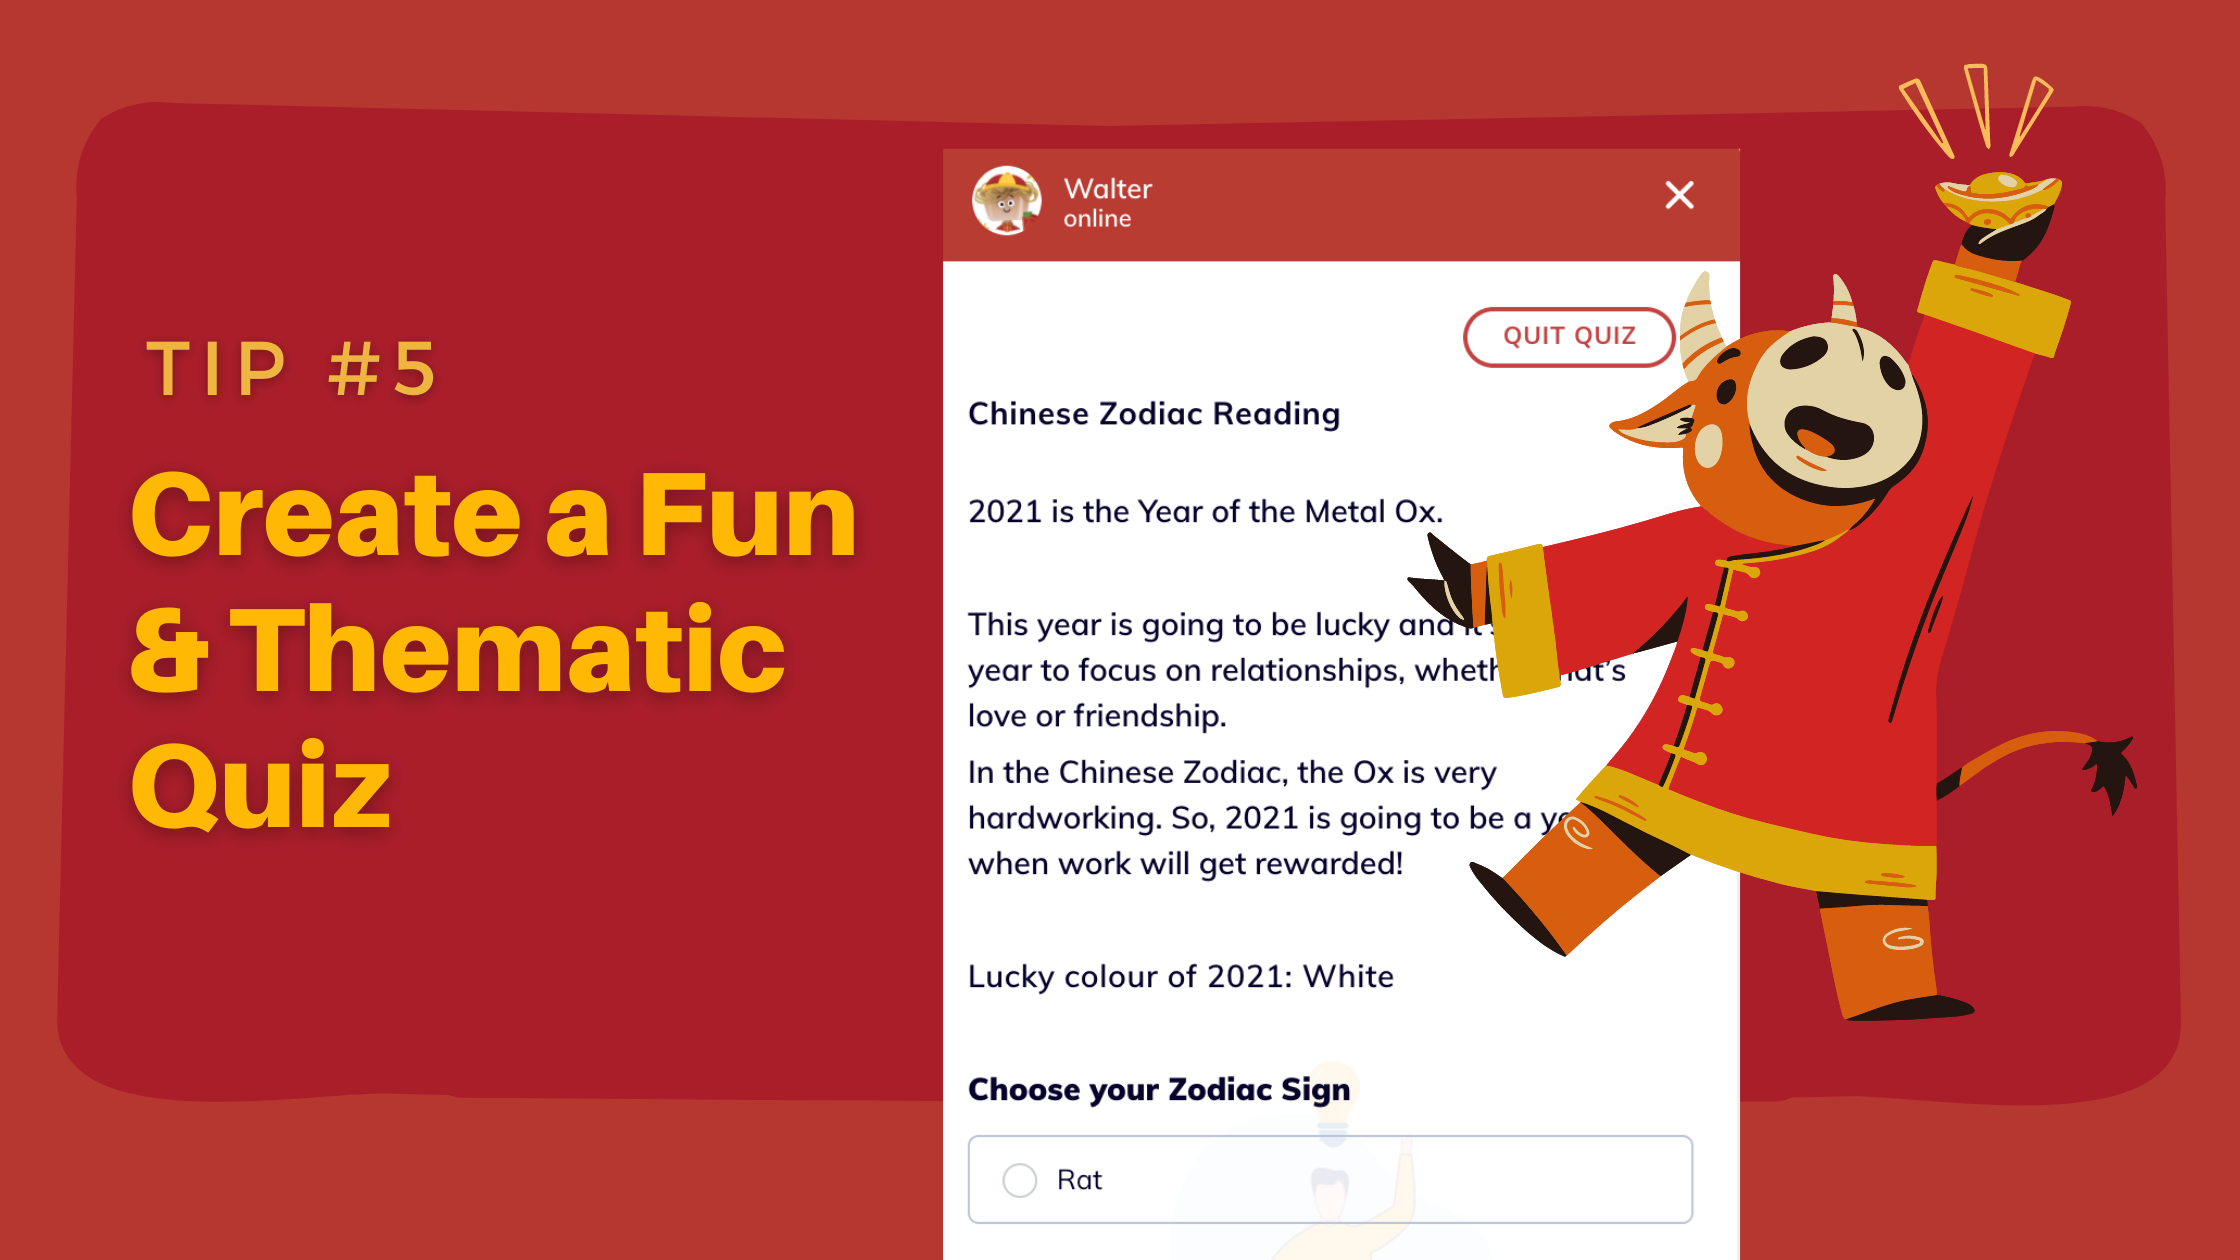 Prepare Your Chatbot for Chinese New Year - create fun quiz